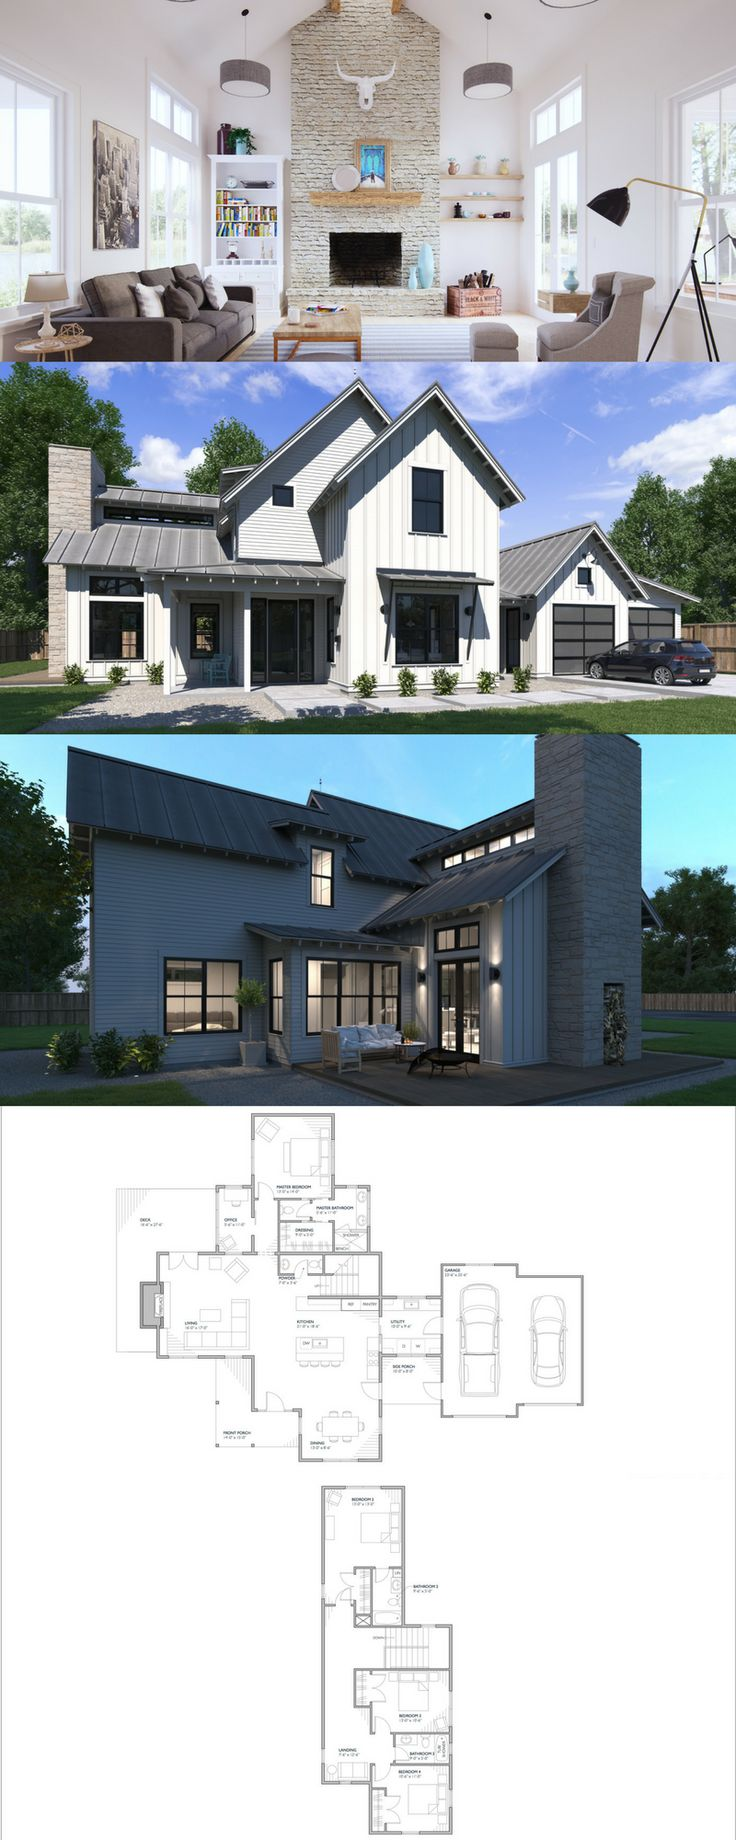 The Normande! Residential Architecture, Online House Plans, Online Floor Plans, Farmhouse Floor Plans, Family Homes, Architecture, Residential Plans, Modern Farmhouse Style, Modern Farmhouse Design, Farmhouse Style, Farmhouse Design, Modern Farmhouse Floor Plan, Farmhouse House Plan, Modern Farmhouse House Plan.